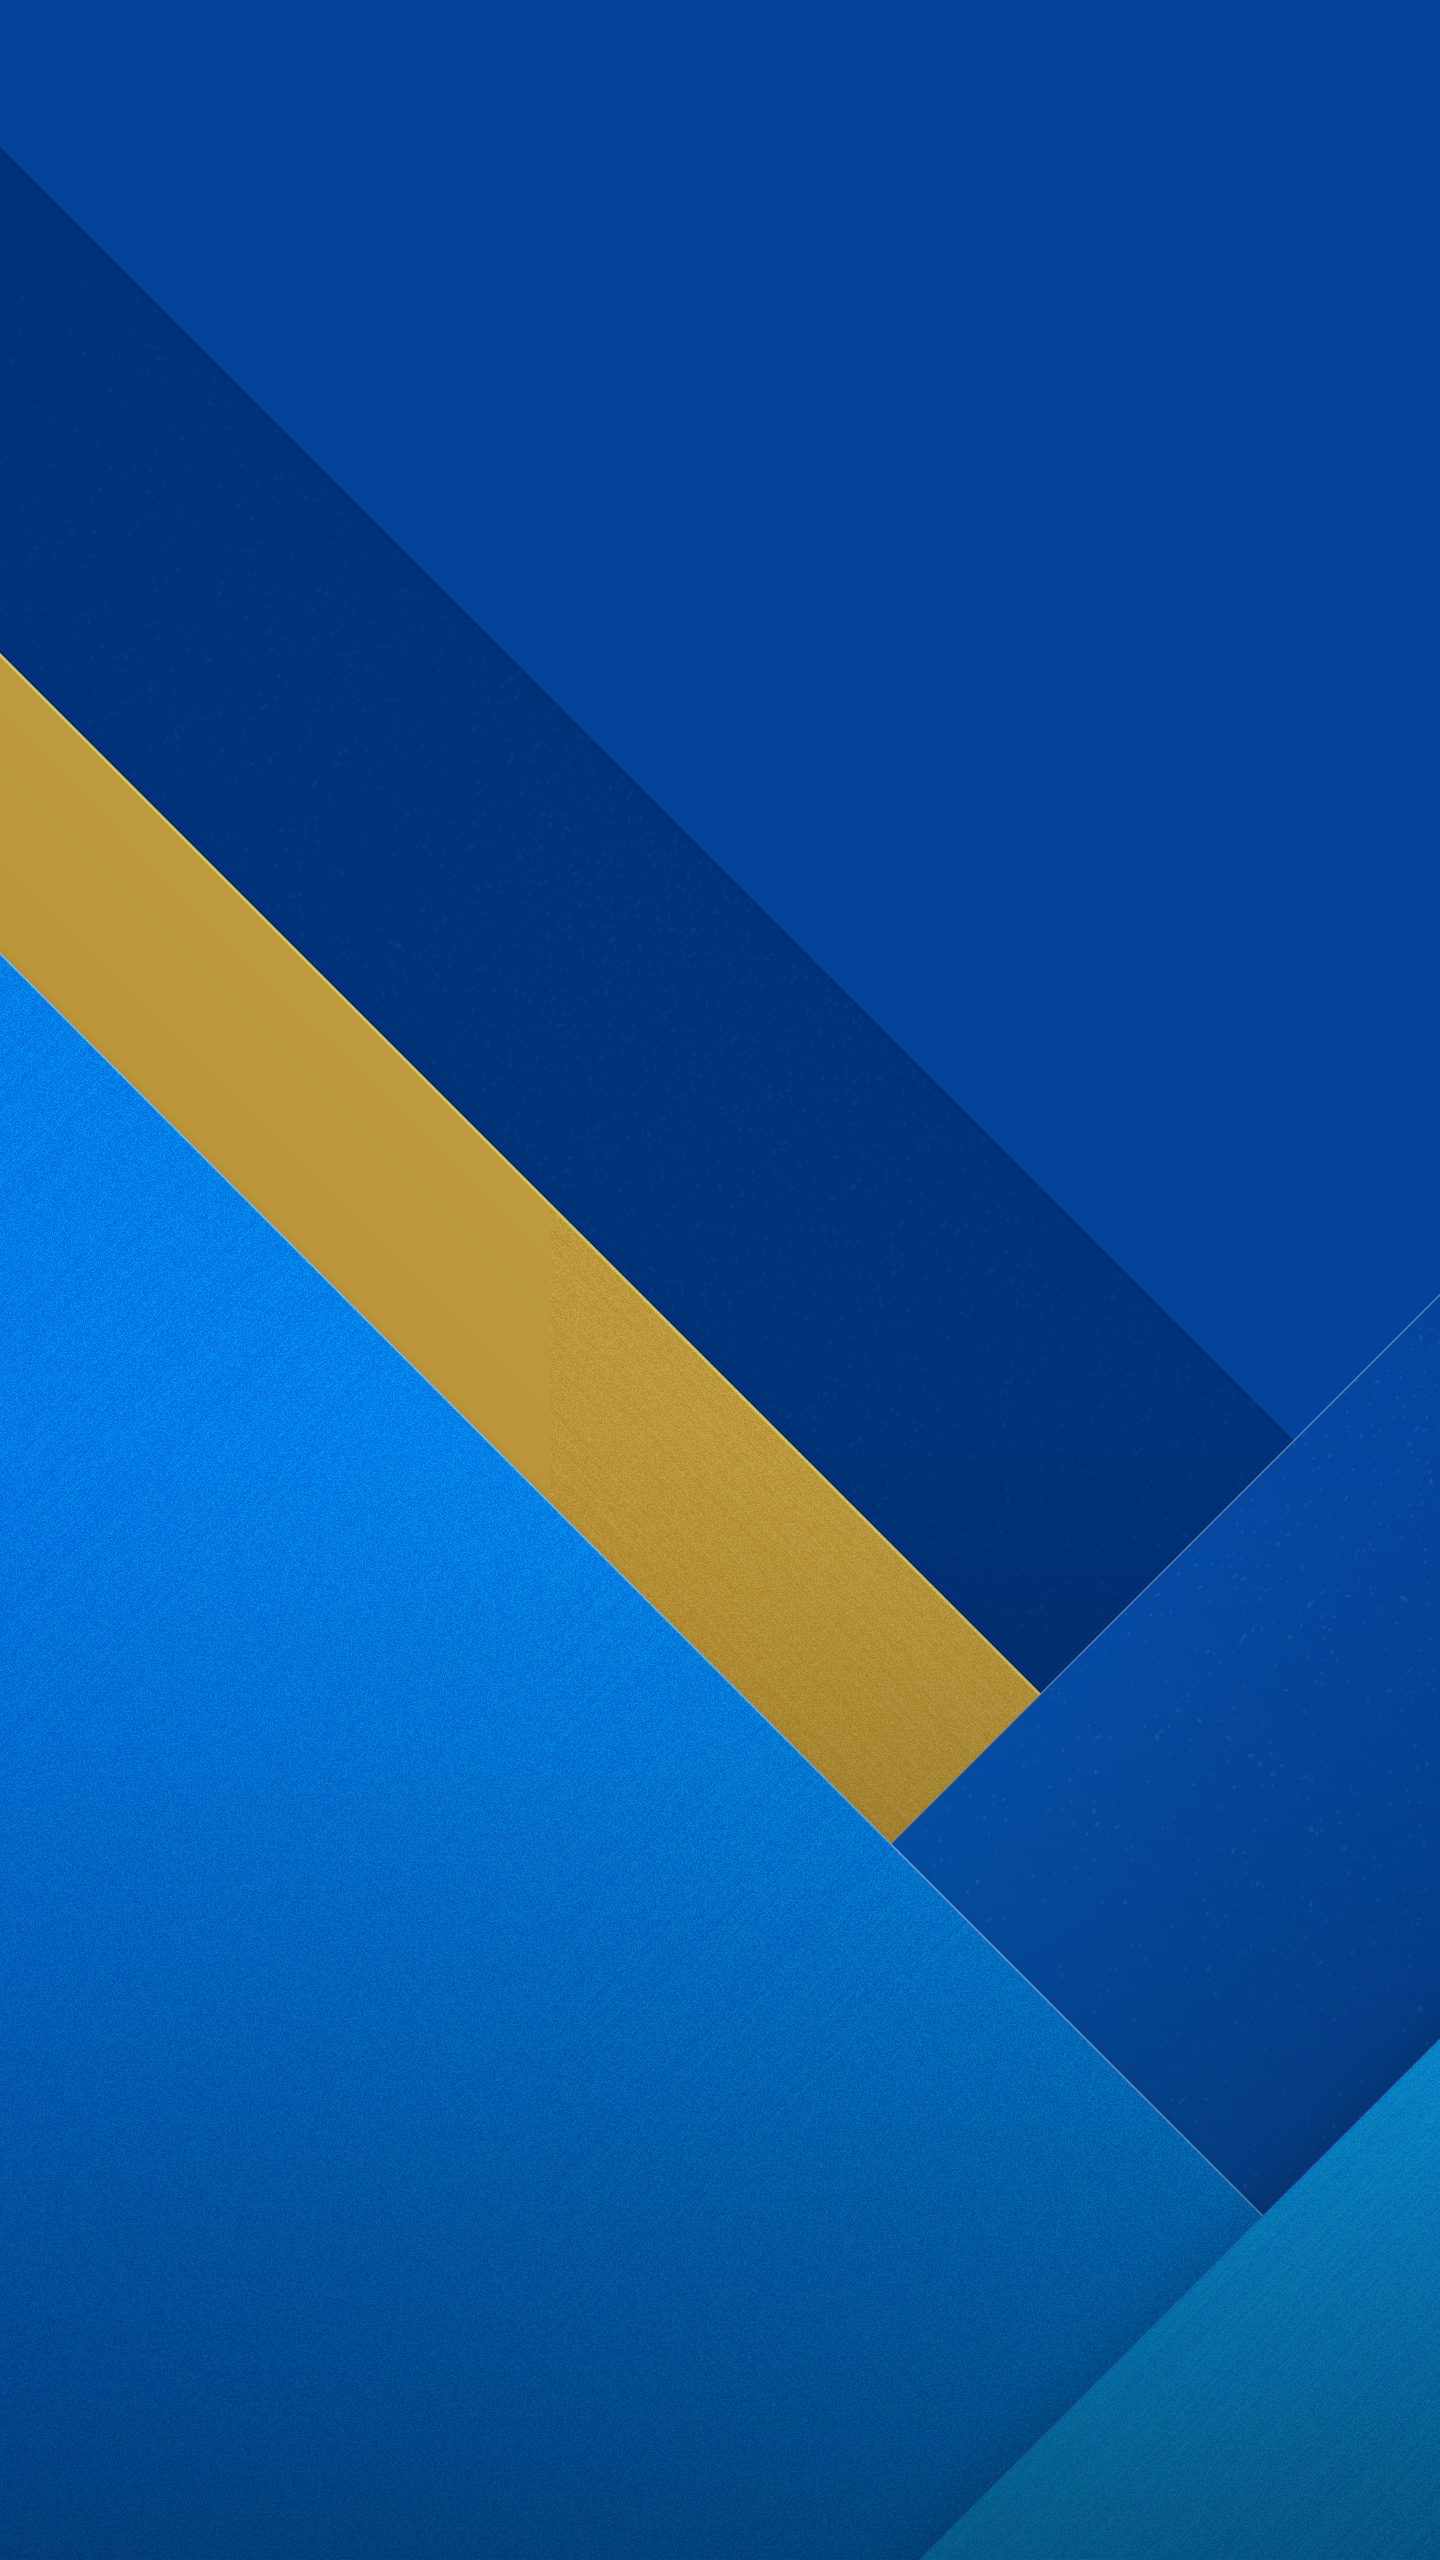 Diagonal Lines 3 For Samsung Galaxy S7 And Edge Wallpaper